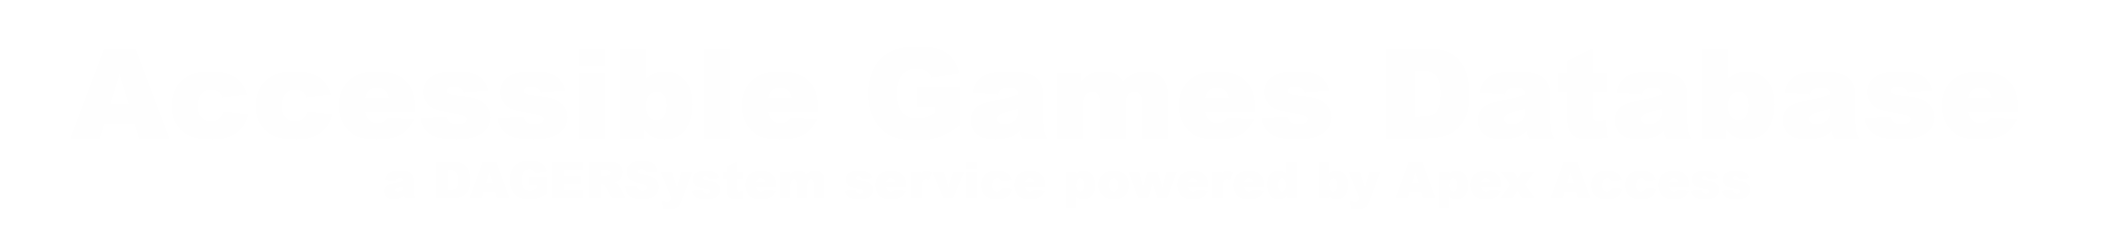 Accessible Games Database